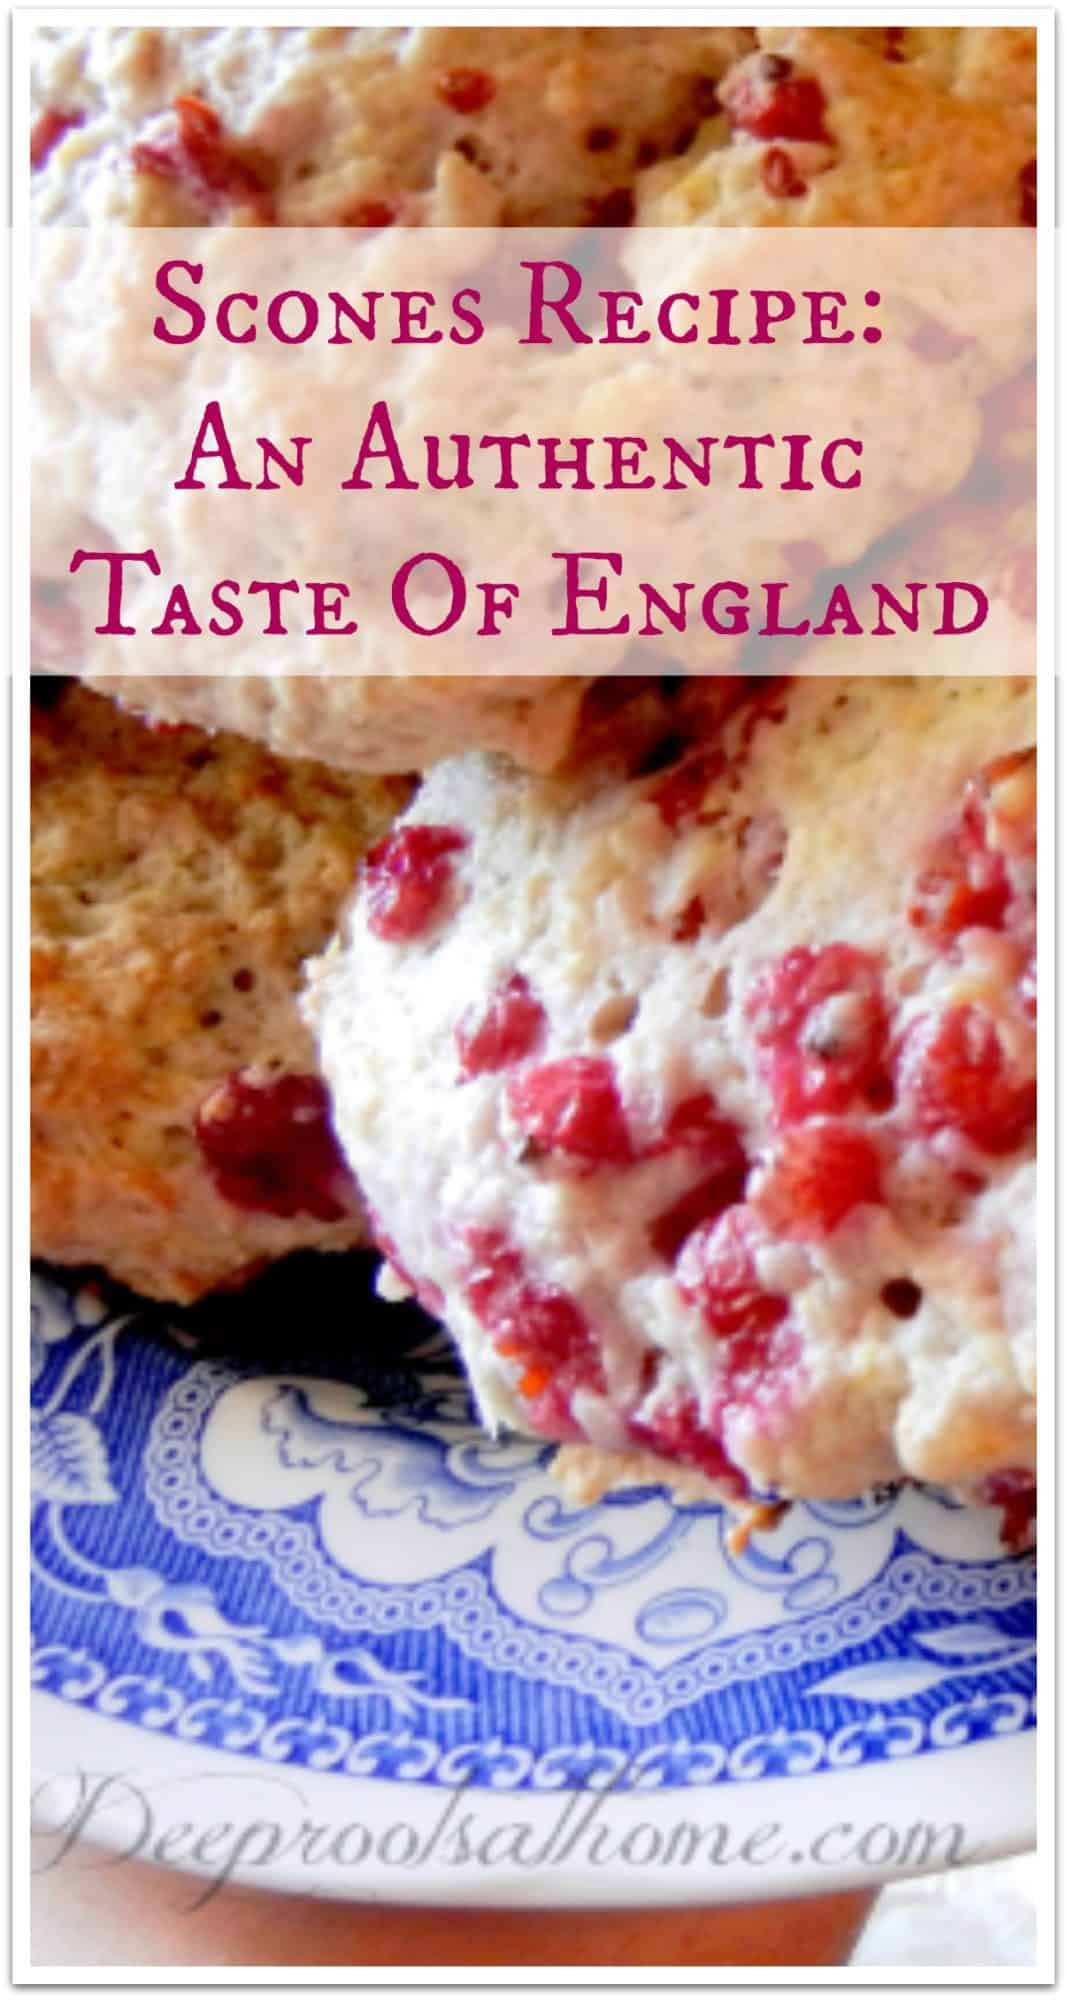 Currant Scones Recipe: Authentic Taste Of Merry Old England, currant scones, plate of sweets, sweet treats, fresh baked, hot out of the oven, dessert scones, high tea, English tea, cozy home, Breezy Brookshire, Reading to the Children, plates of warm scone, graduation party, raisins, berries, fruit scones, warm out of the oven,